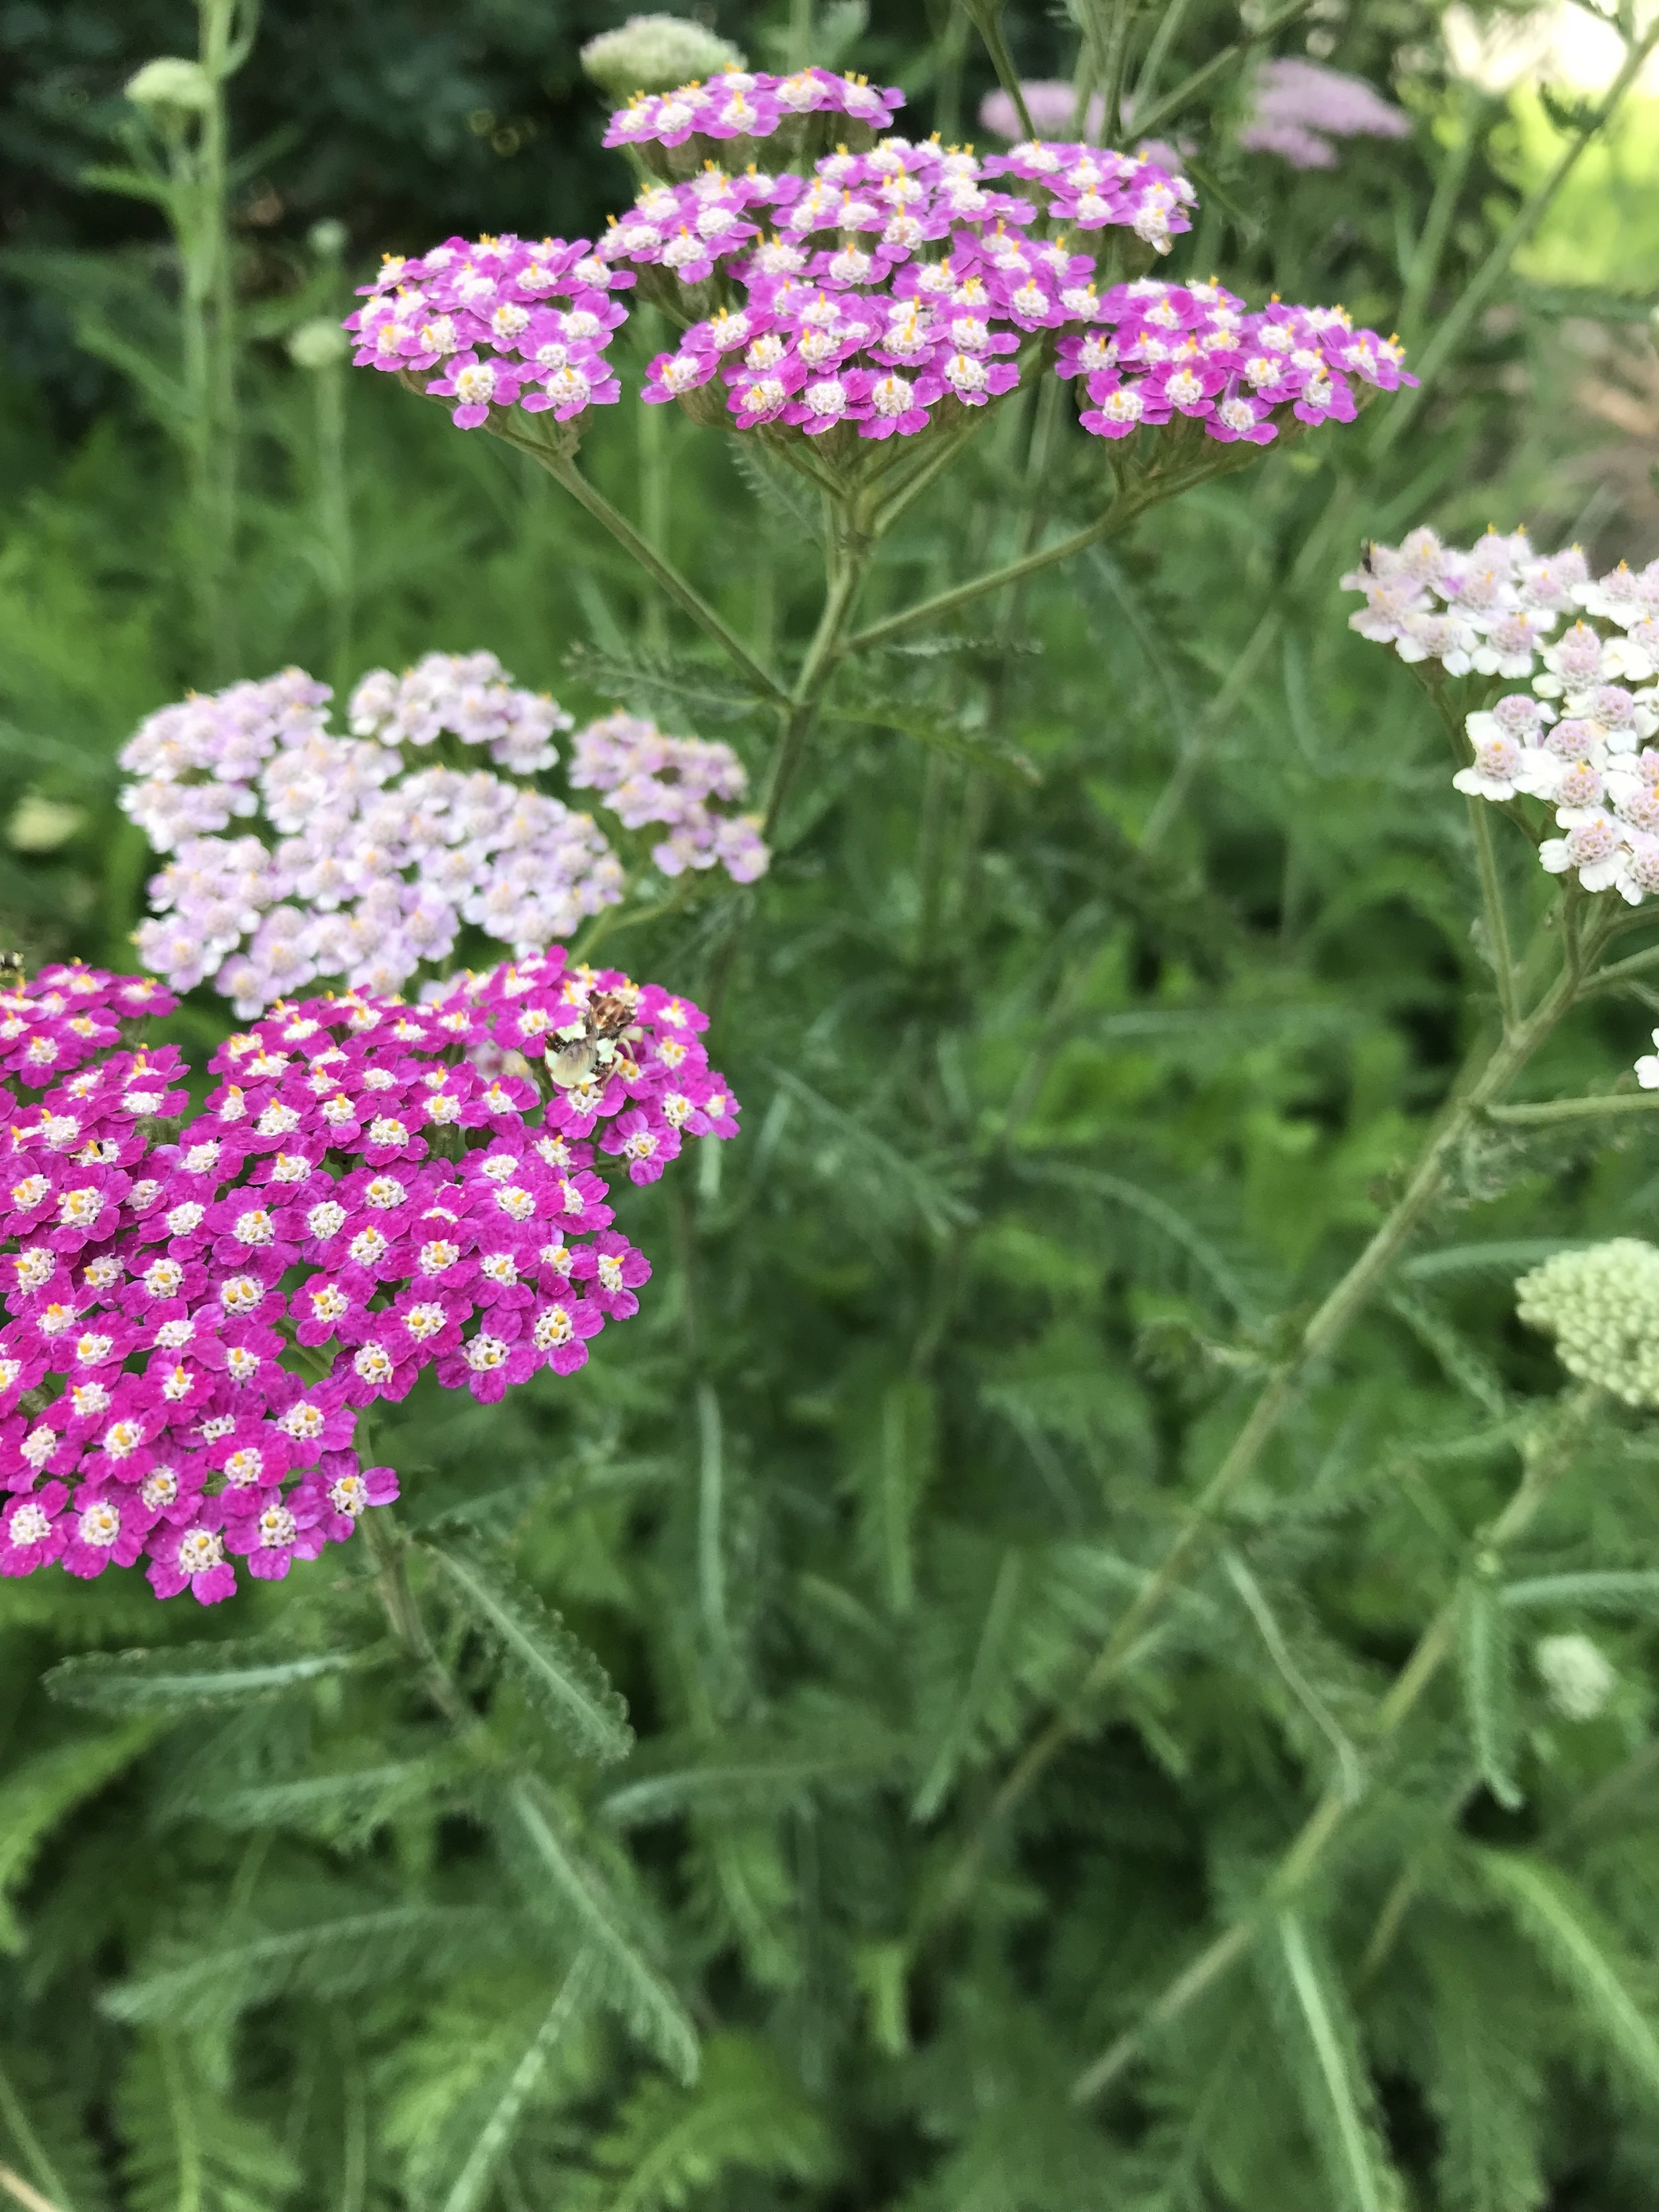 Image 1:  Achillea millefolium  in flower. If you look closely, you'll notice that each flower is actually a compound of smaller flowers; this is a characteristic of Asteraceae family members like the dandelion and the sunflower. Taken by the author: Kevin Healey.